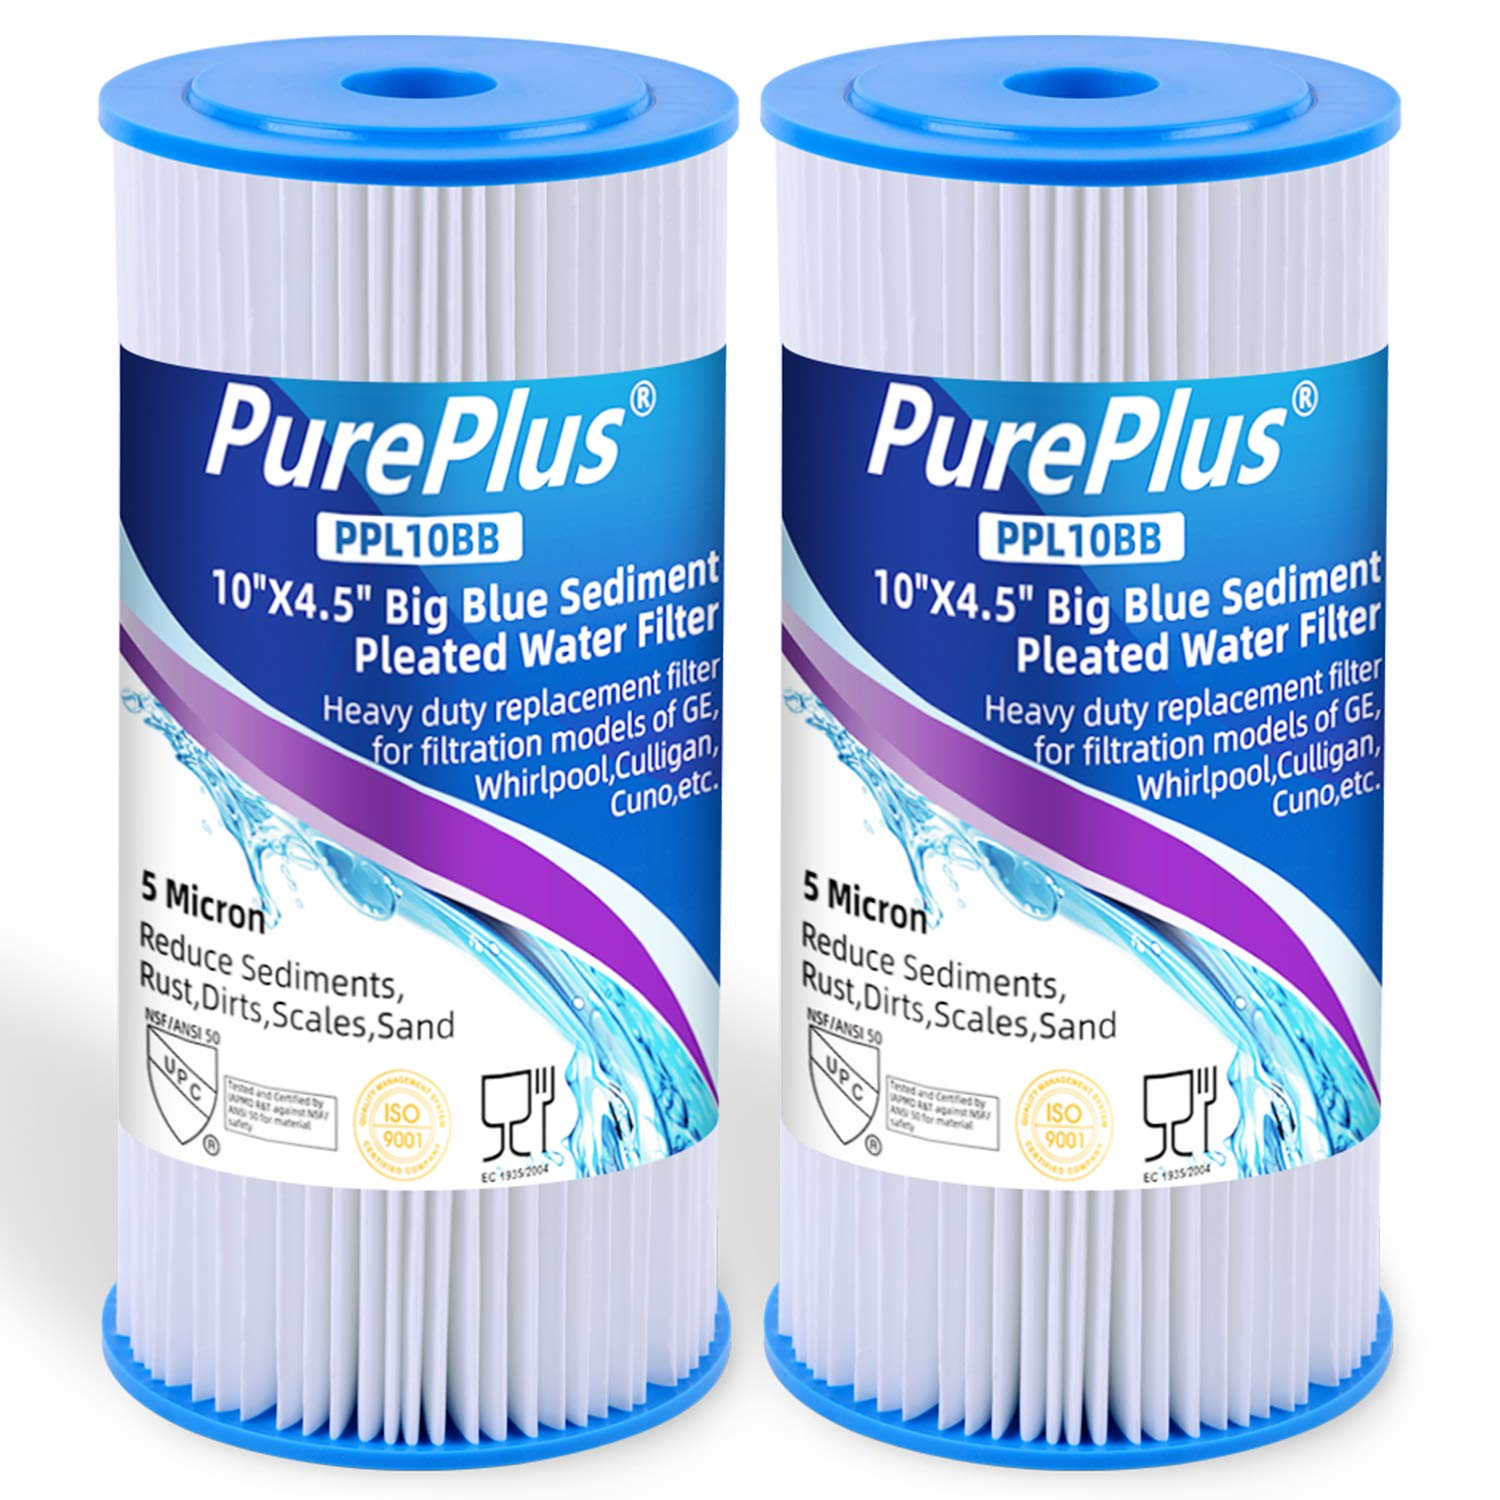 5 Micron 10'' x 4.5'' Whole House Big Blue Pleated Sediment Water Filter Replacement Cartridge Compatible with DuPont WFHD13001, GE FXHSC, Culligan R50-BBSA, Pentek R50-BB, W50PEHD, GXWH40L, 2-Pack